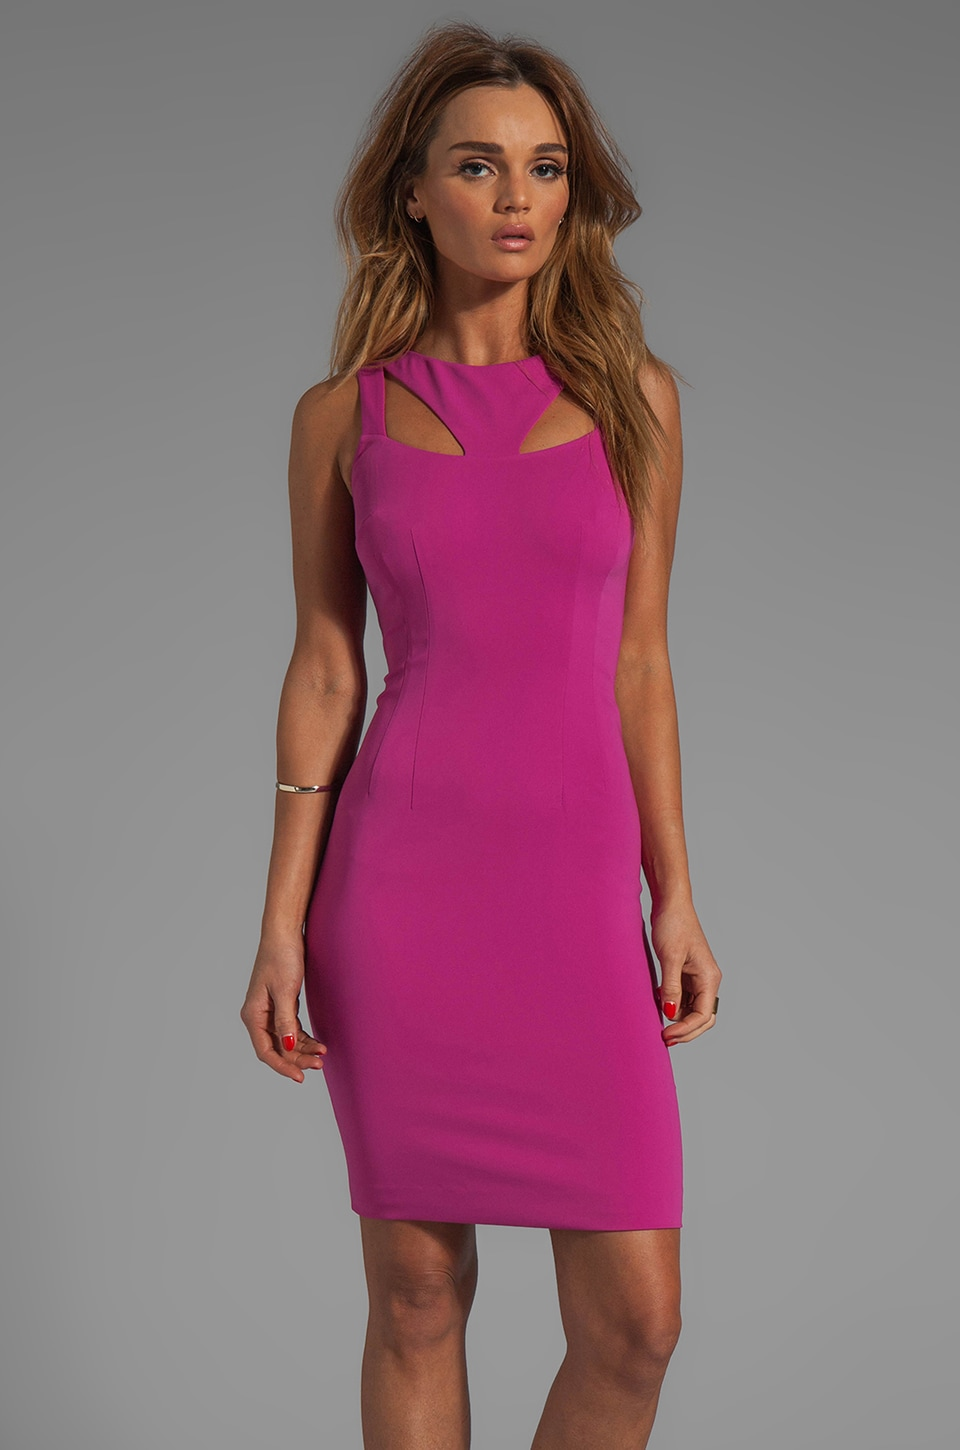 Jay Godfrey Sahar Dress in Magenta